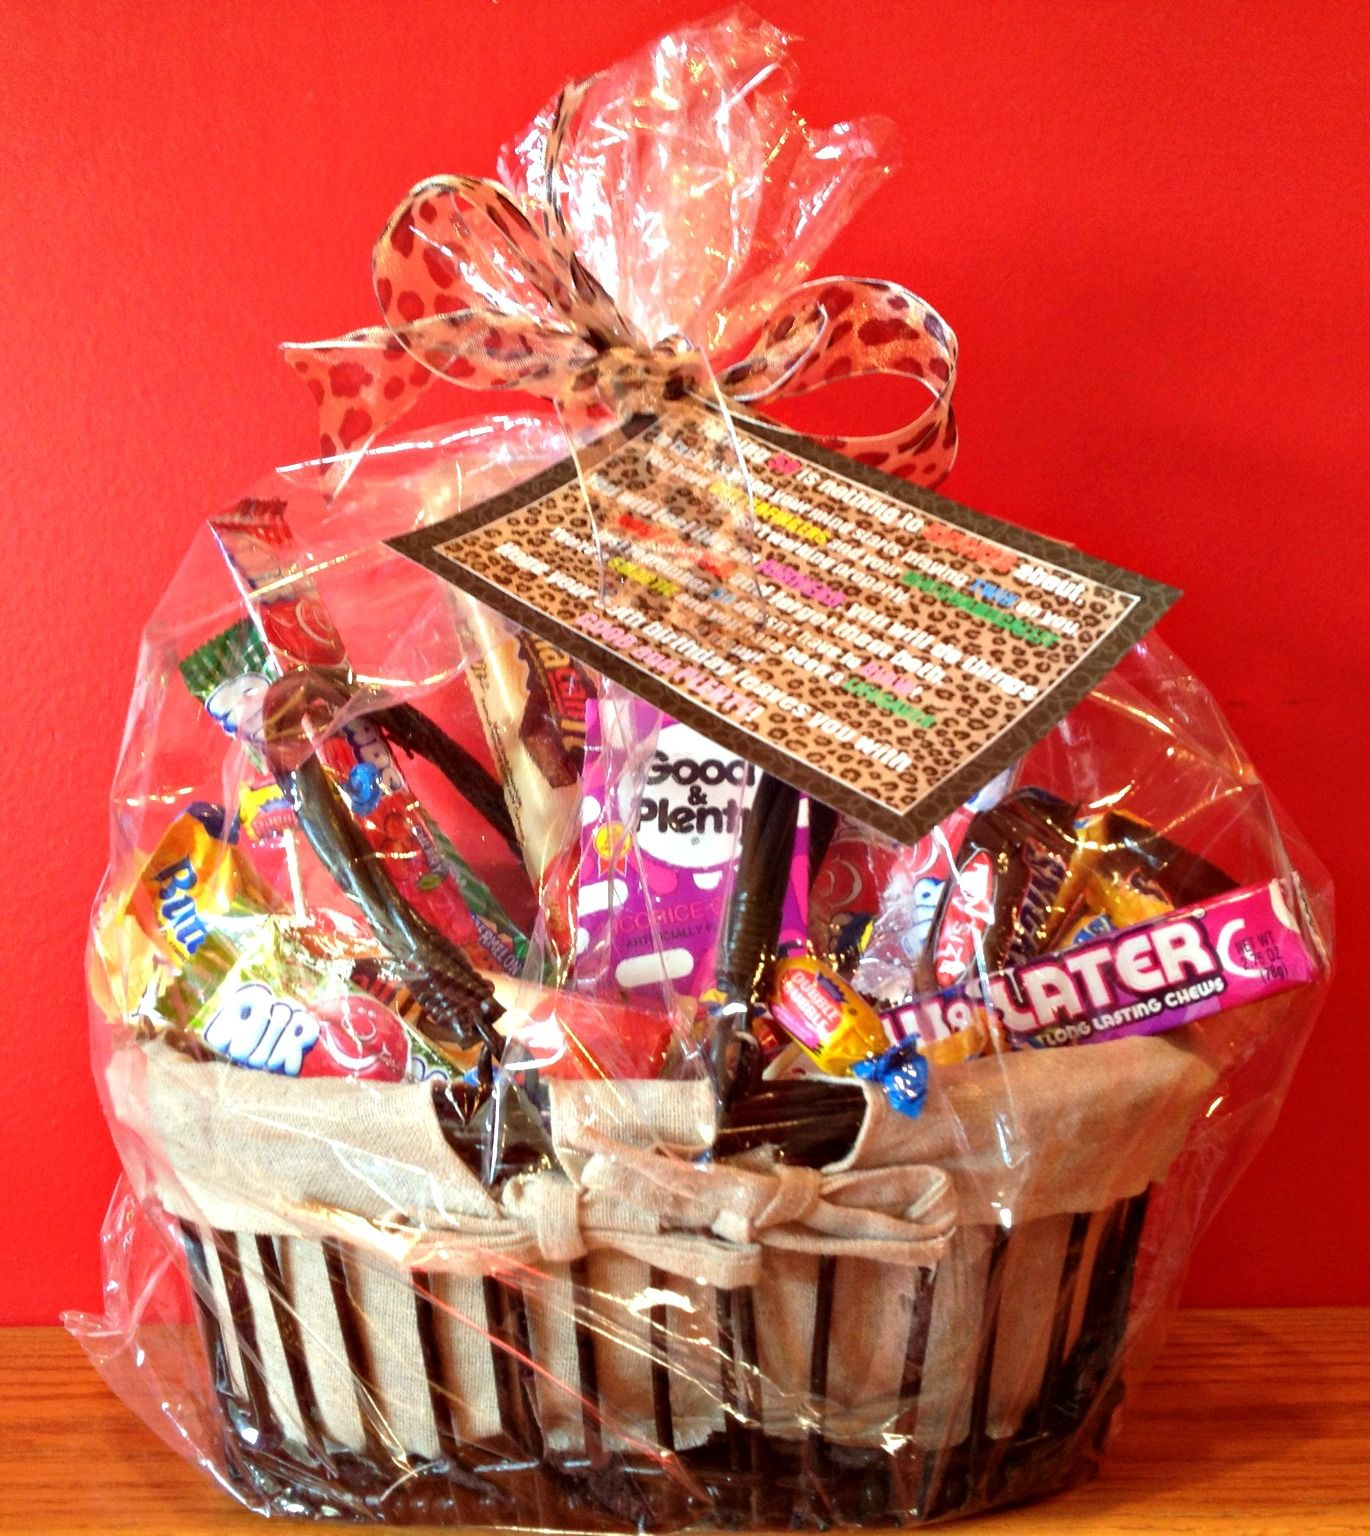 50th Birthday Candy Basket And Poem DIY Gift